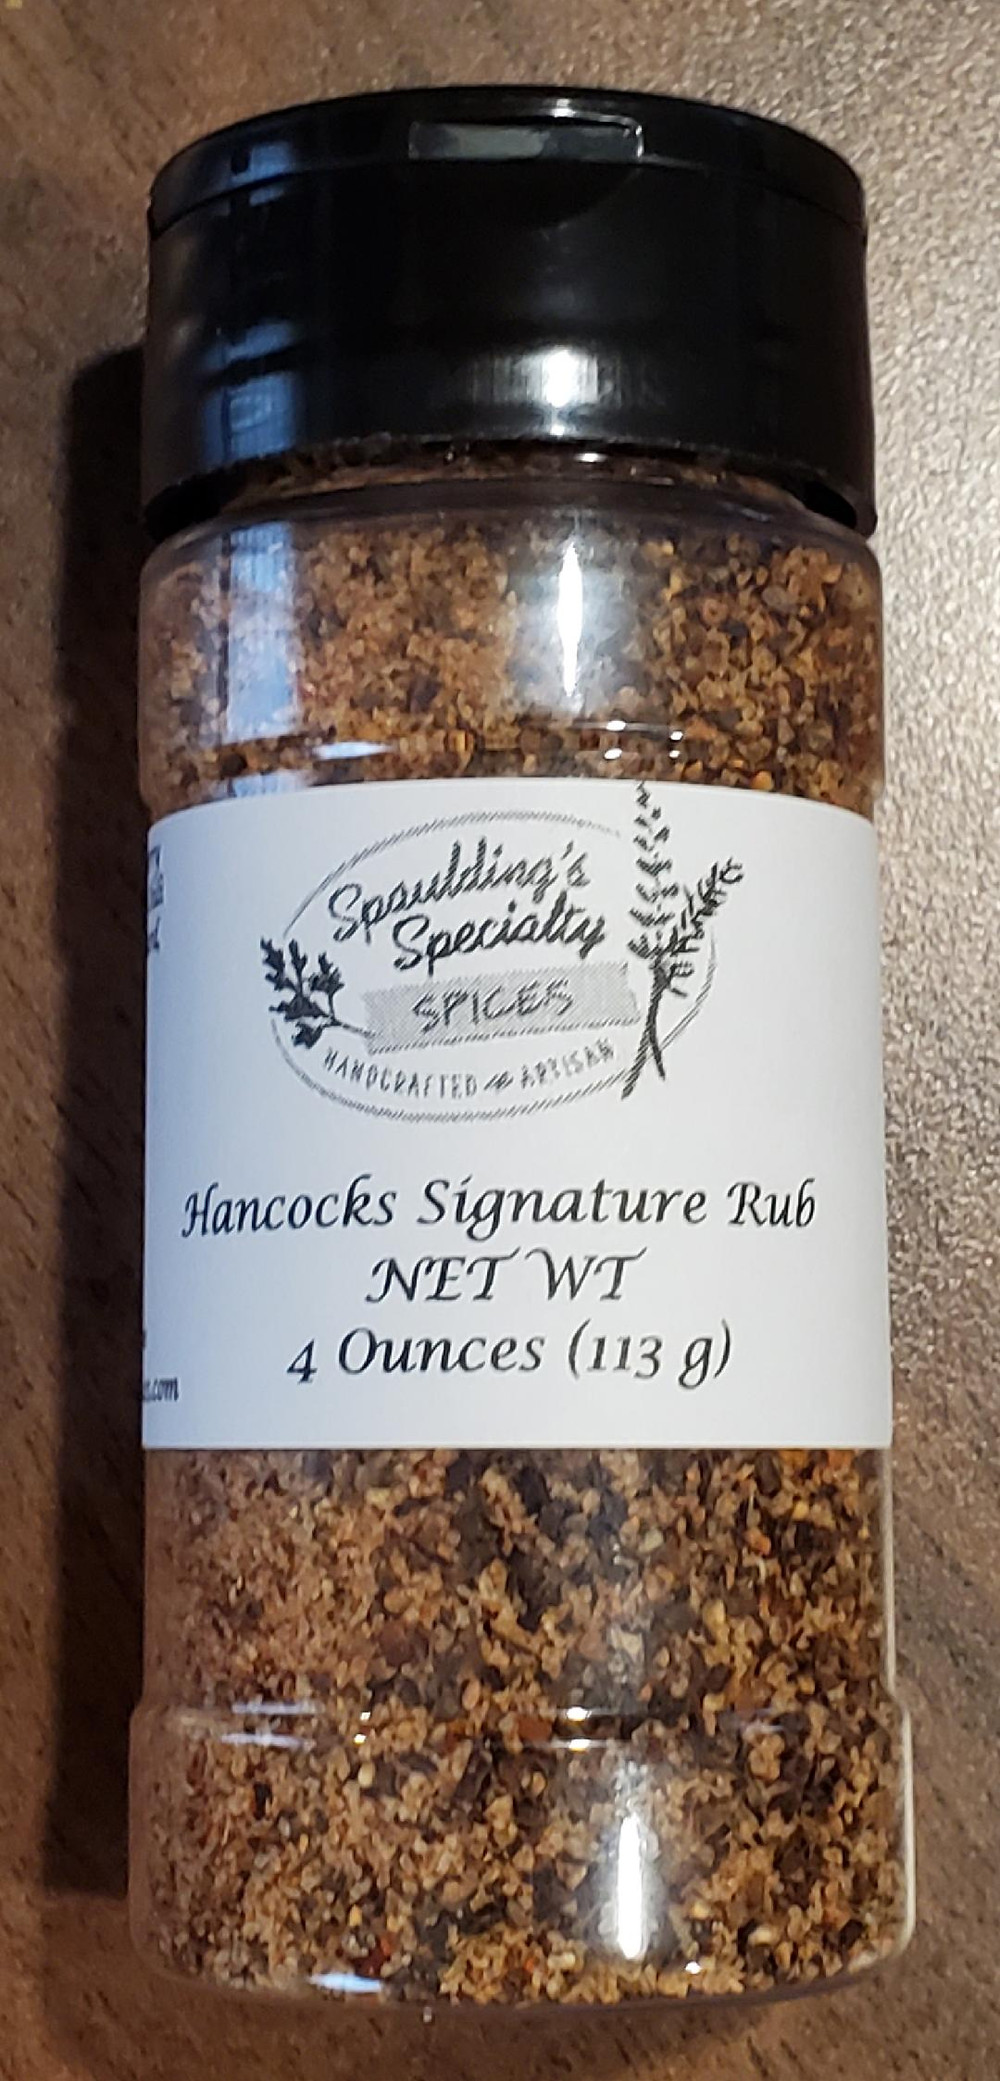 Hancock's Signature Rub